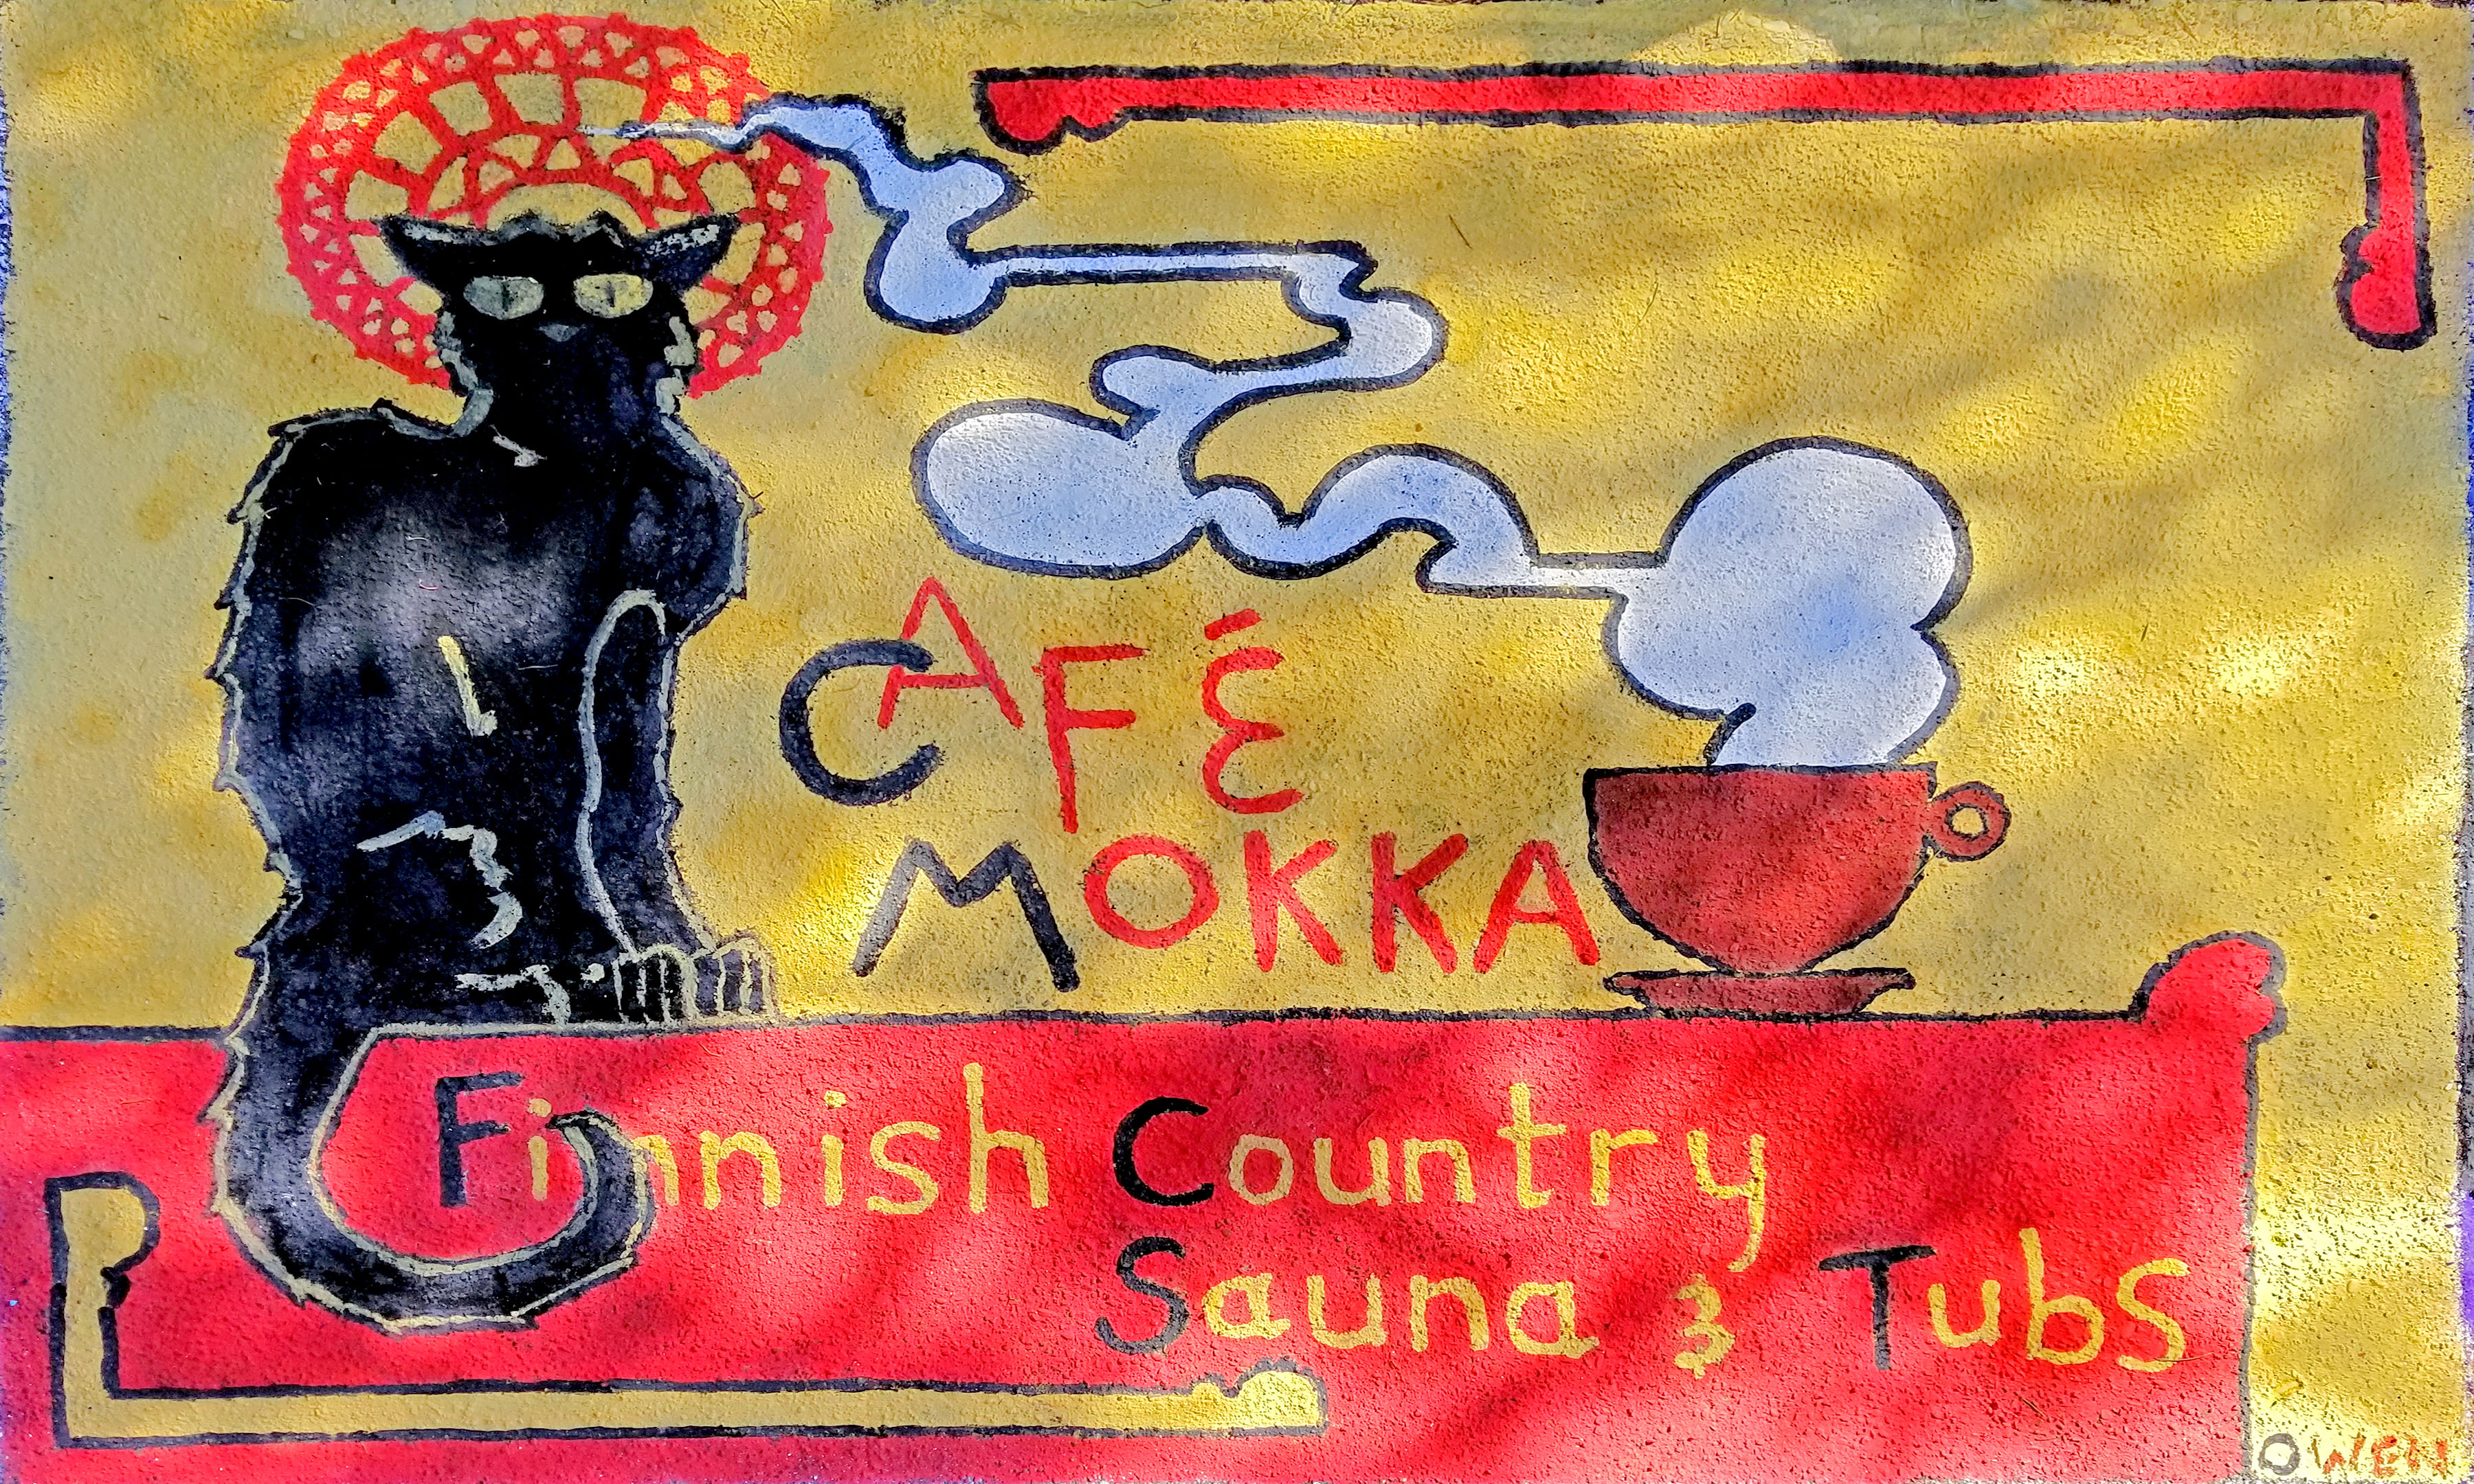 Cafe mokka chat noir